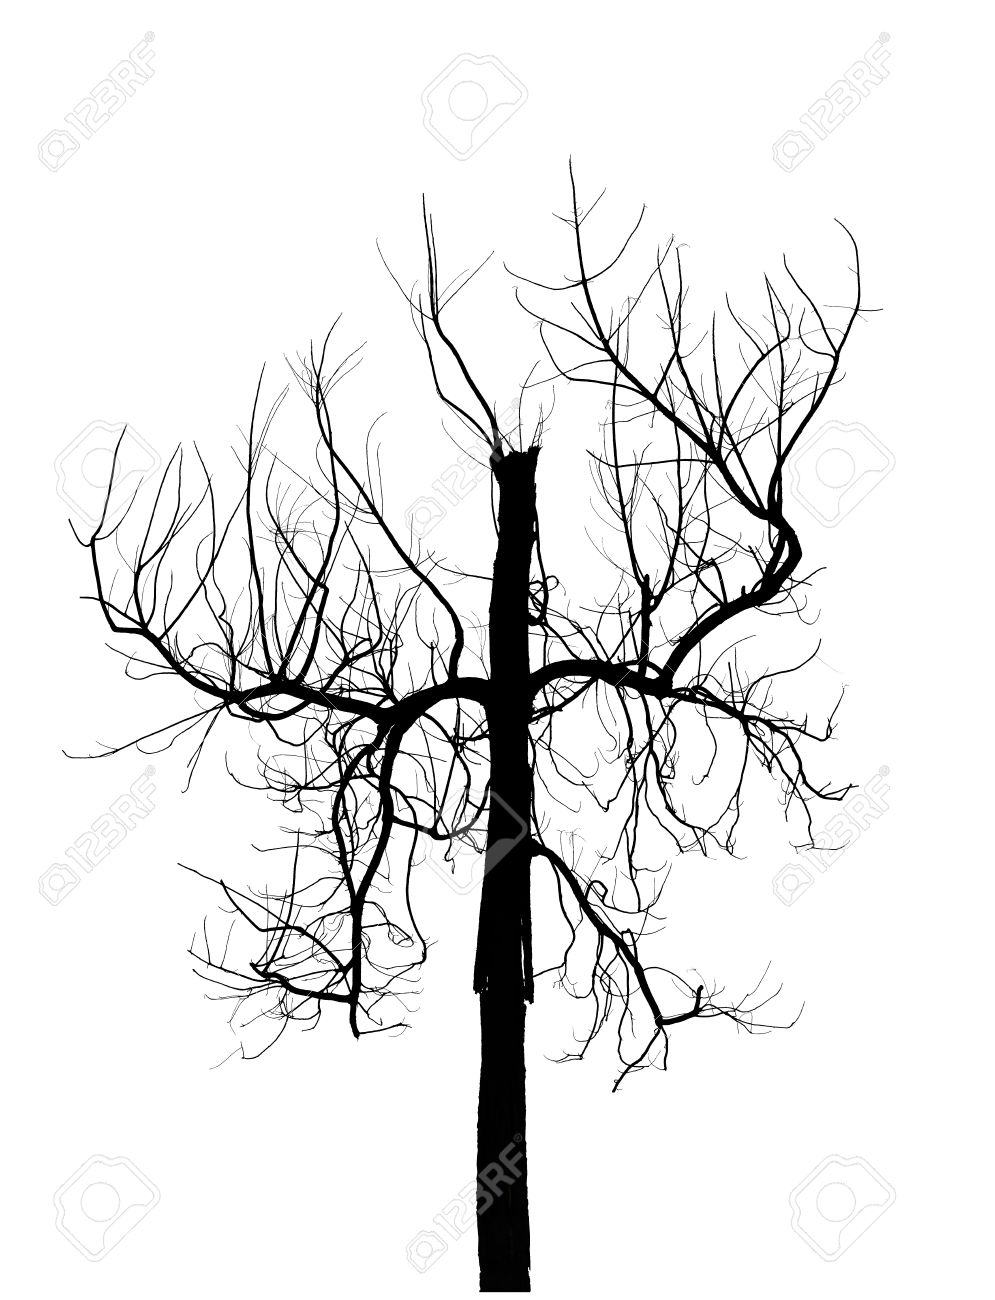 995x1300 Dead Tree Silhouette Isolated On White Background. Creepy Tree